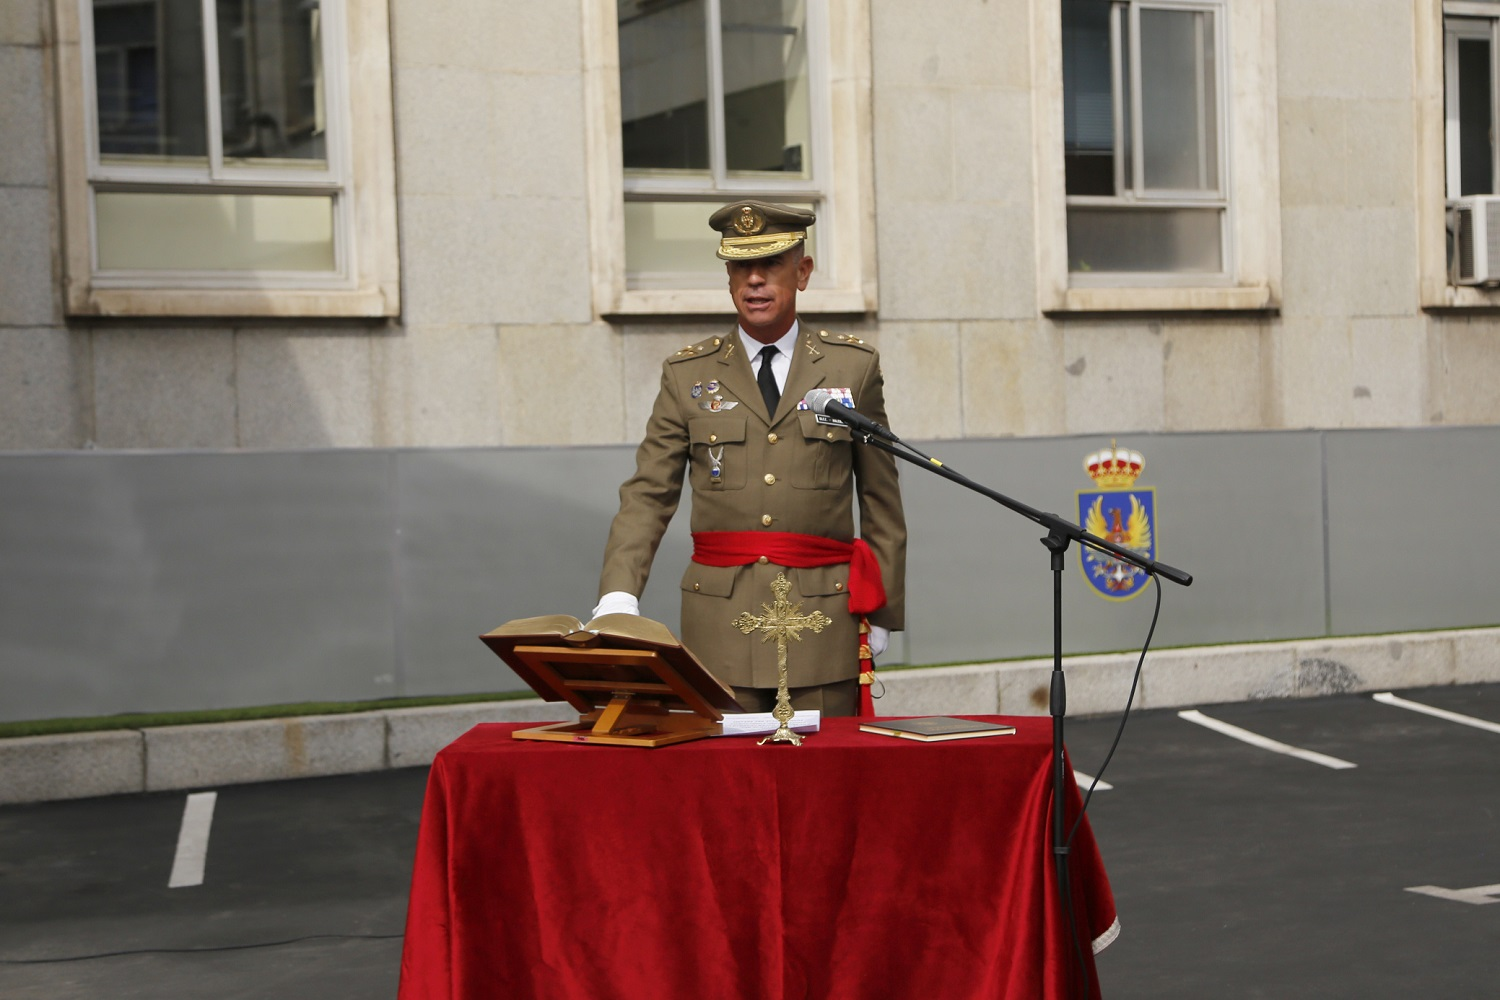 Incoming Chief of Joint Staff swearing in